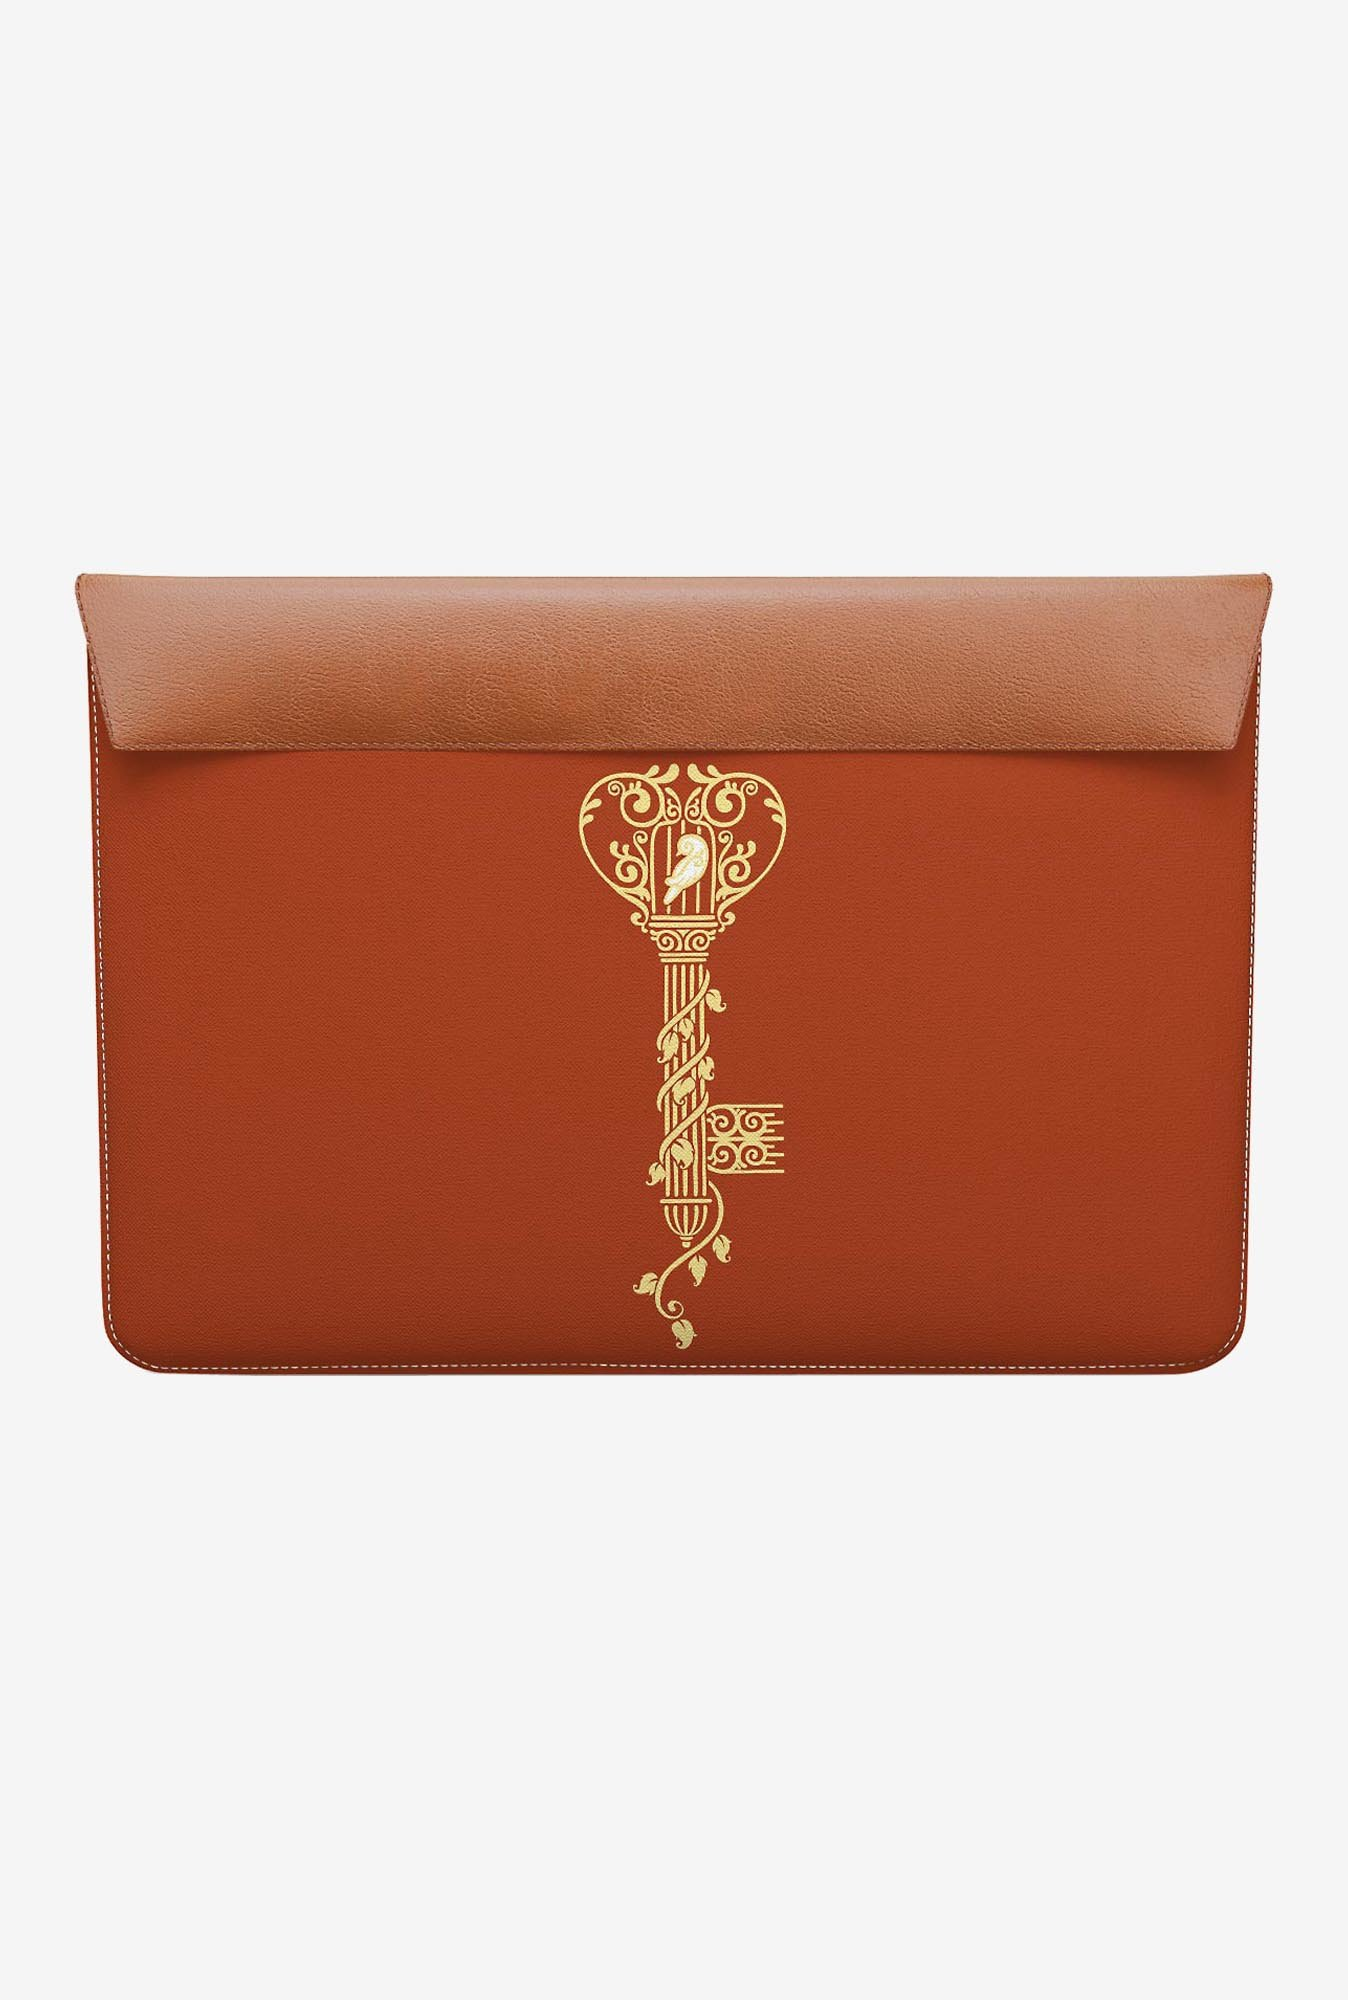 DailyObjects Prisoner MacBook Pro 15 Envelope Sleeve